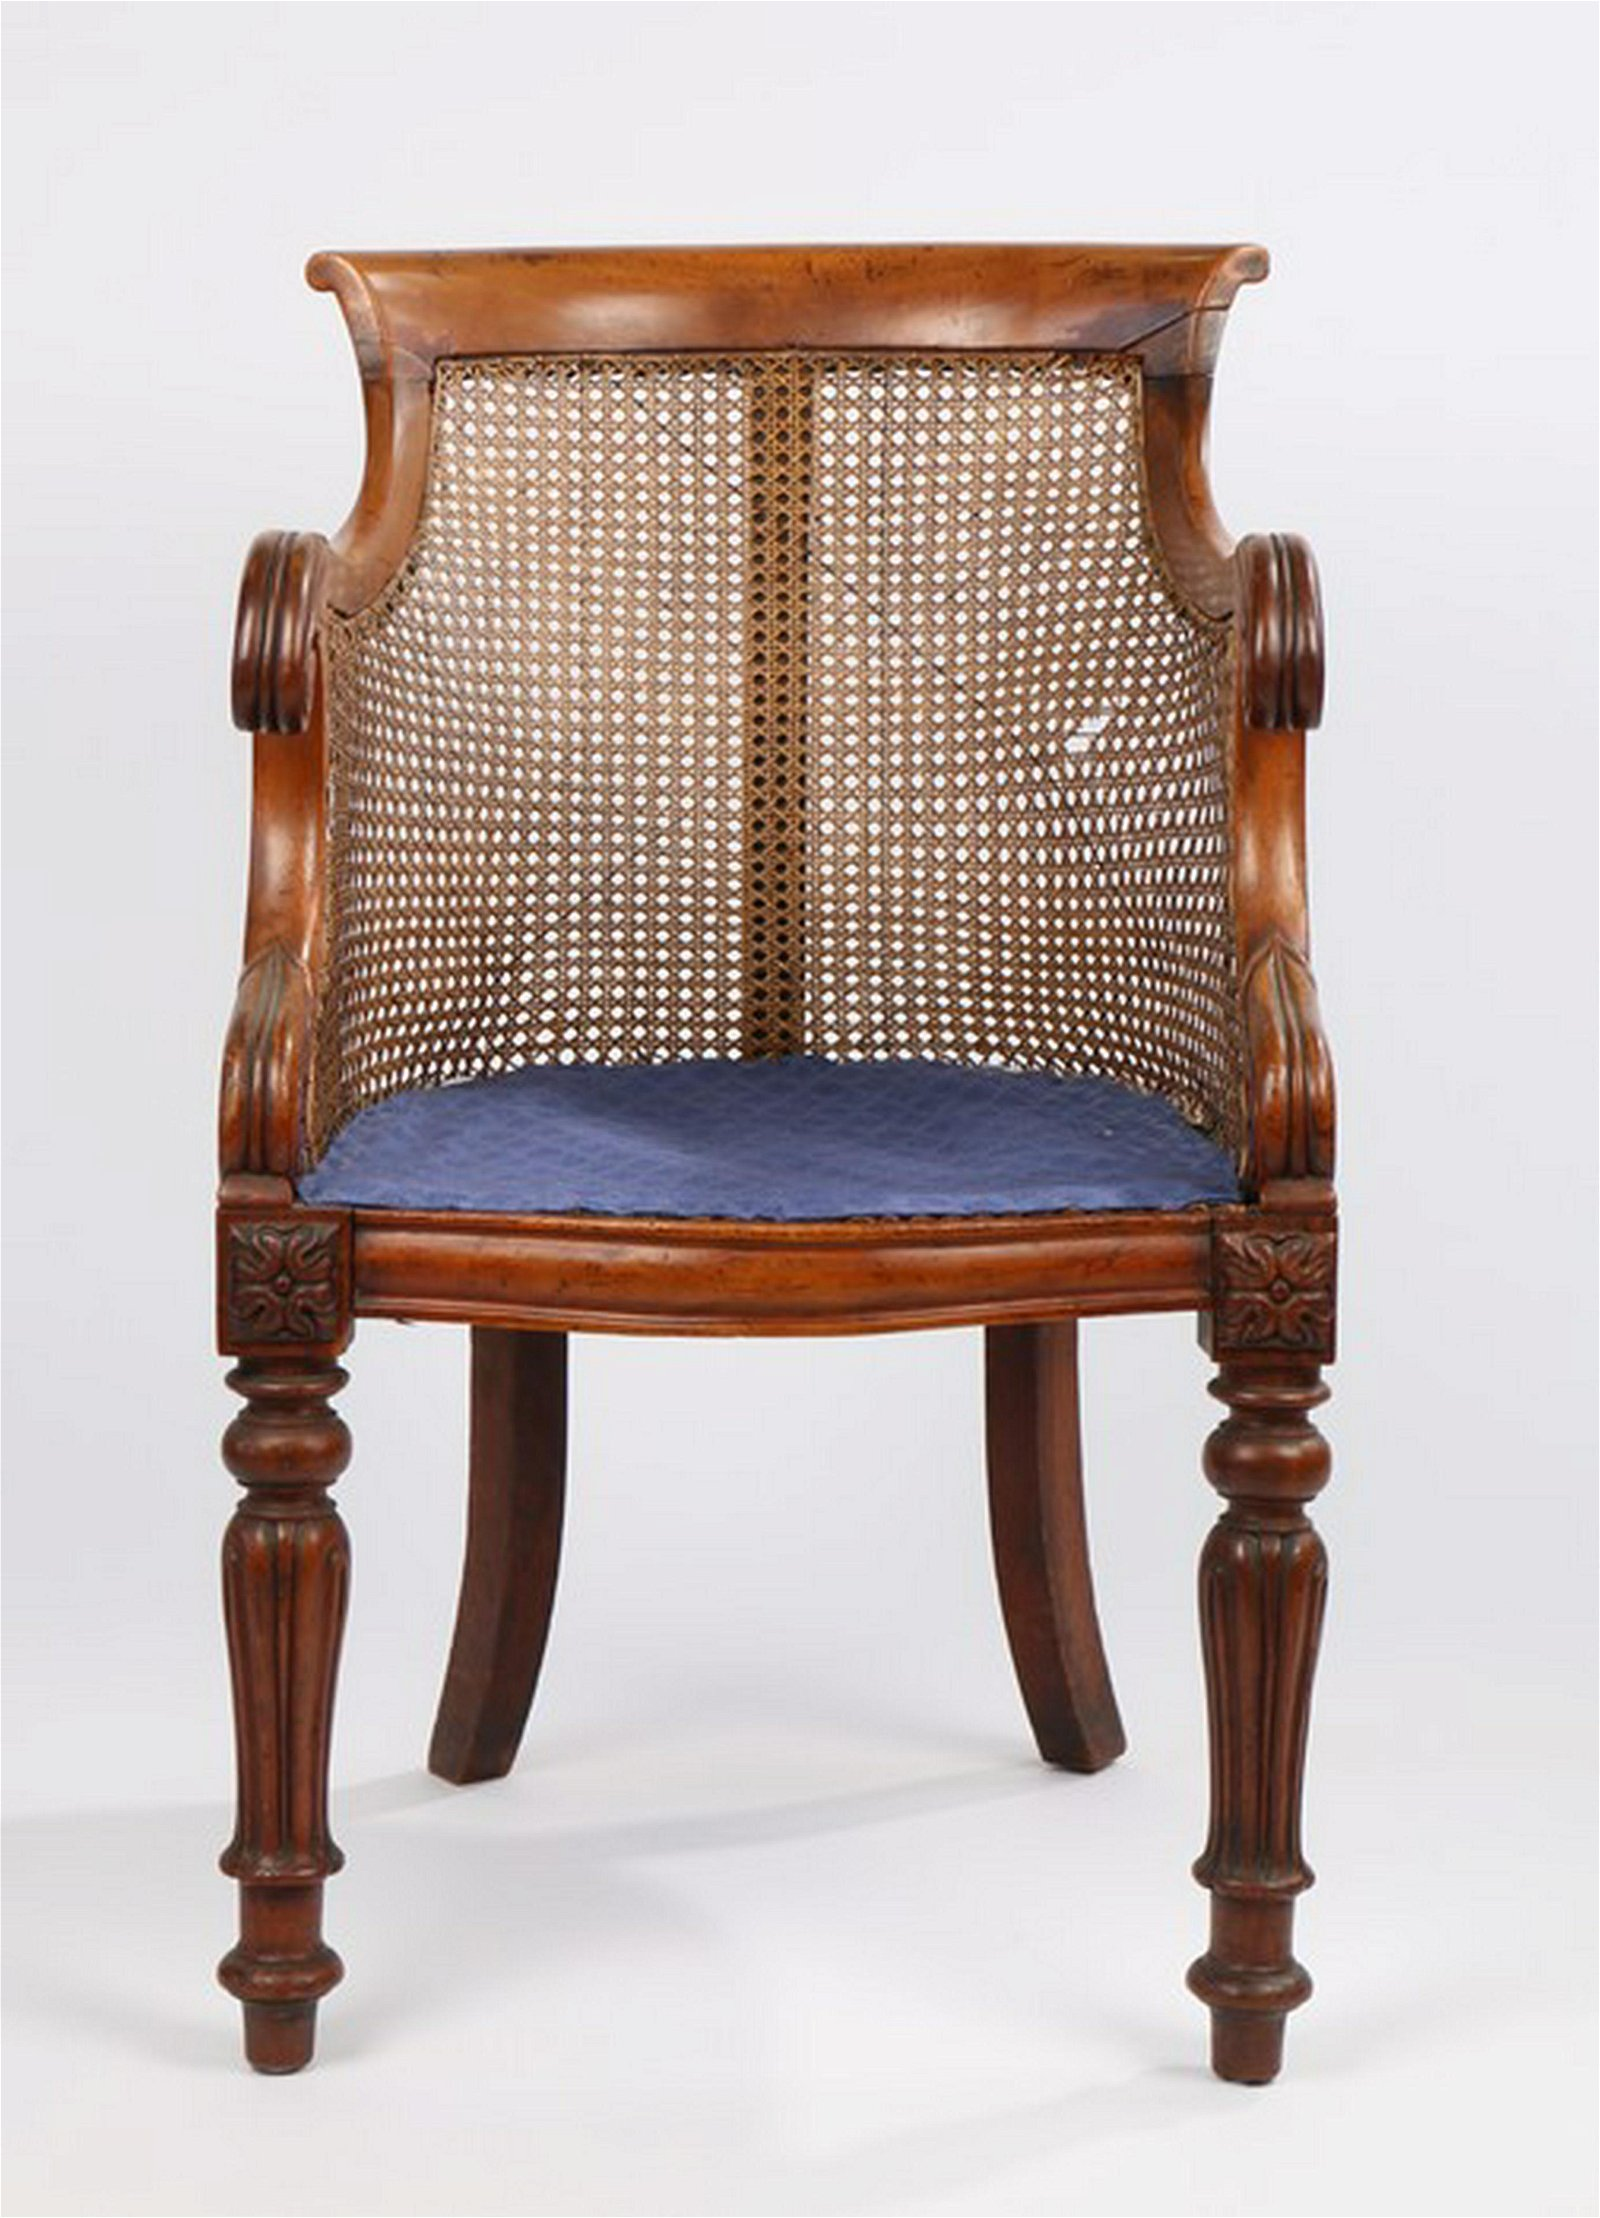 Regency mahogany bergere chair, the arched caned back